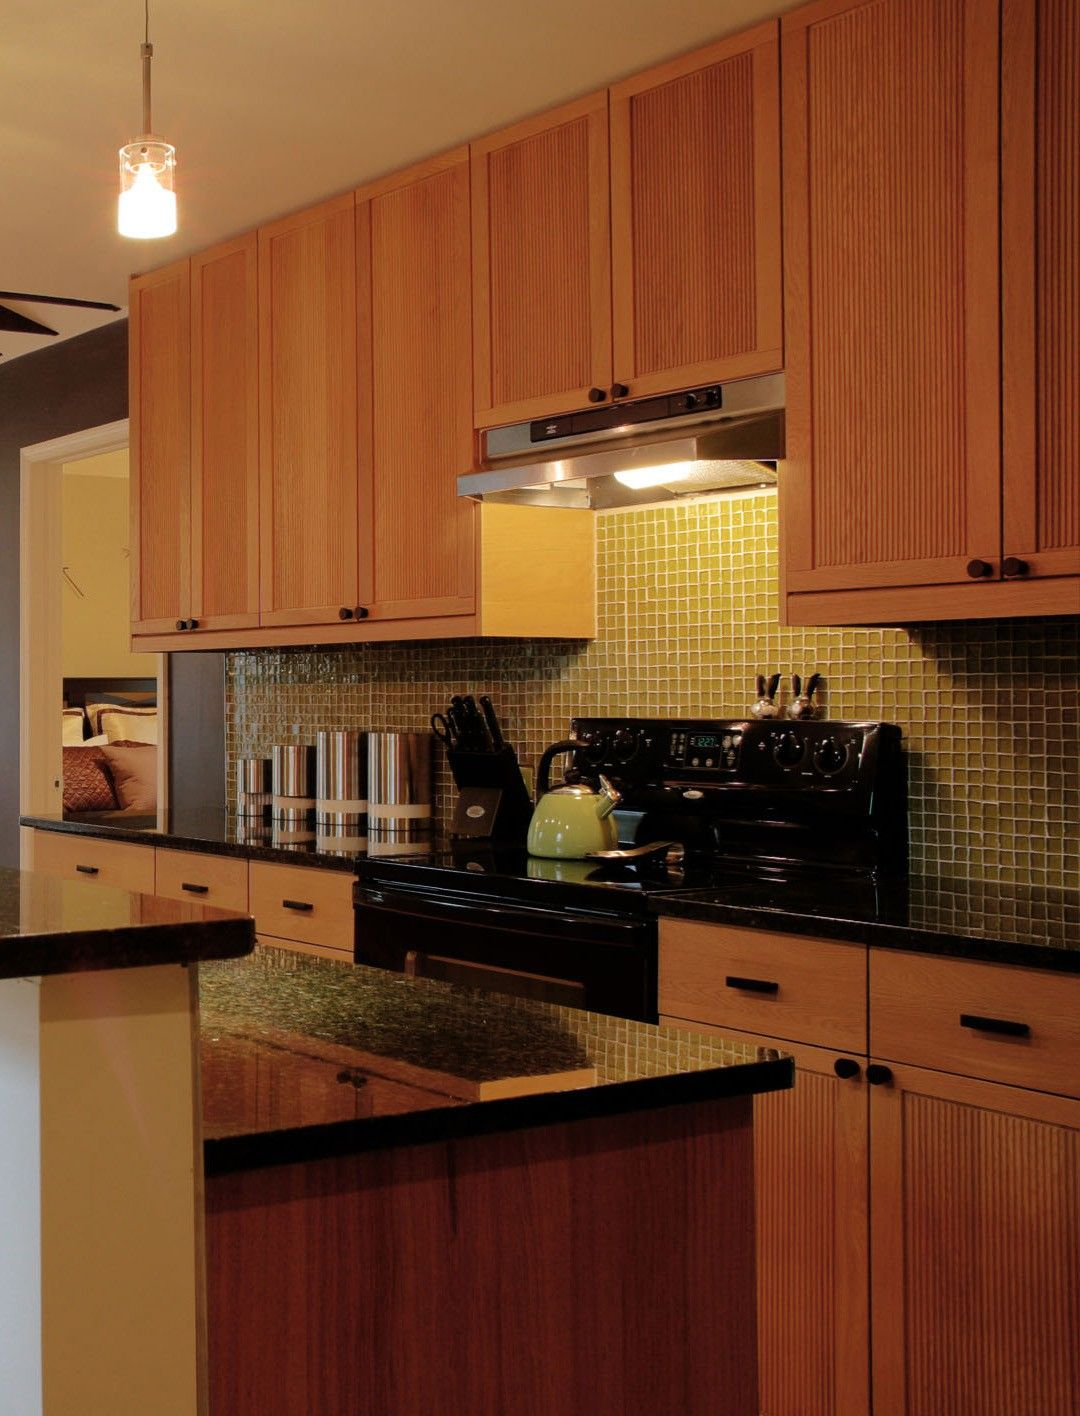 New Ikea Kitchen Cabinets Real Wood The Awesome And Also Beautiful Ikea Kitchen Cabinets Real Wood Regarding Encourage Your Home Found Home Cozy Aspirationho